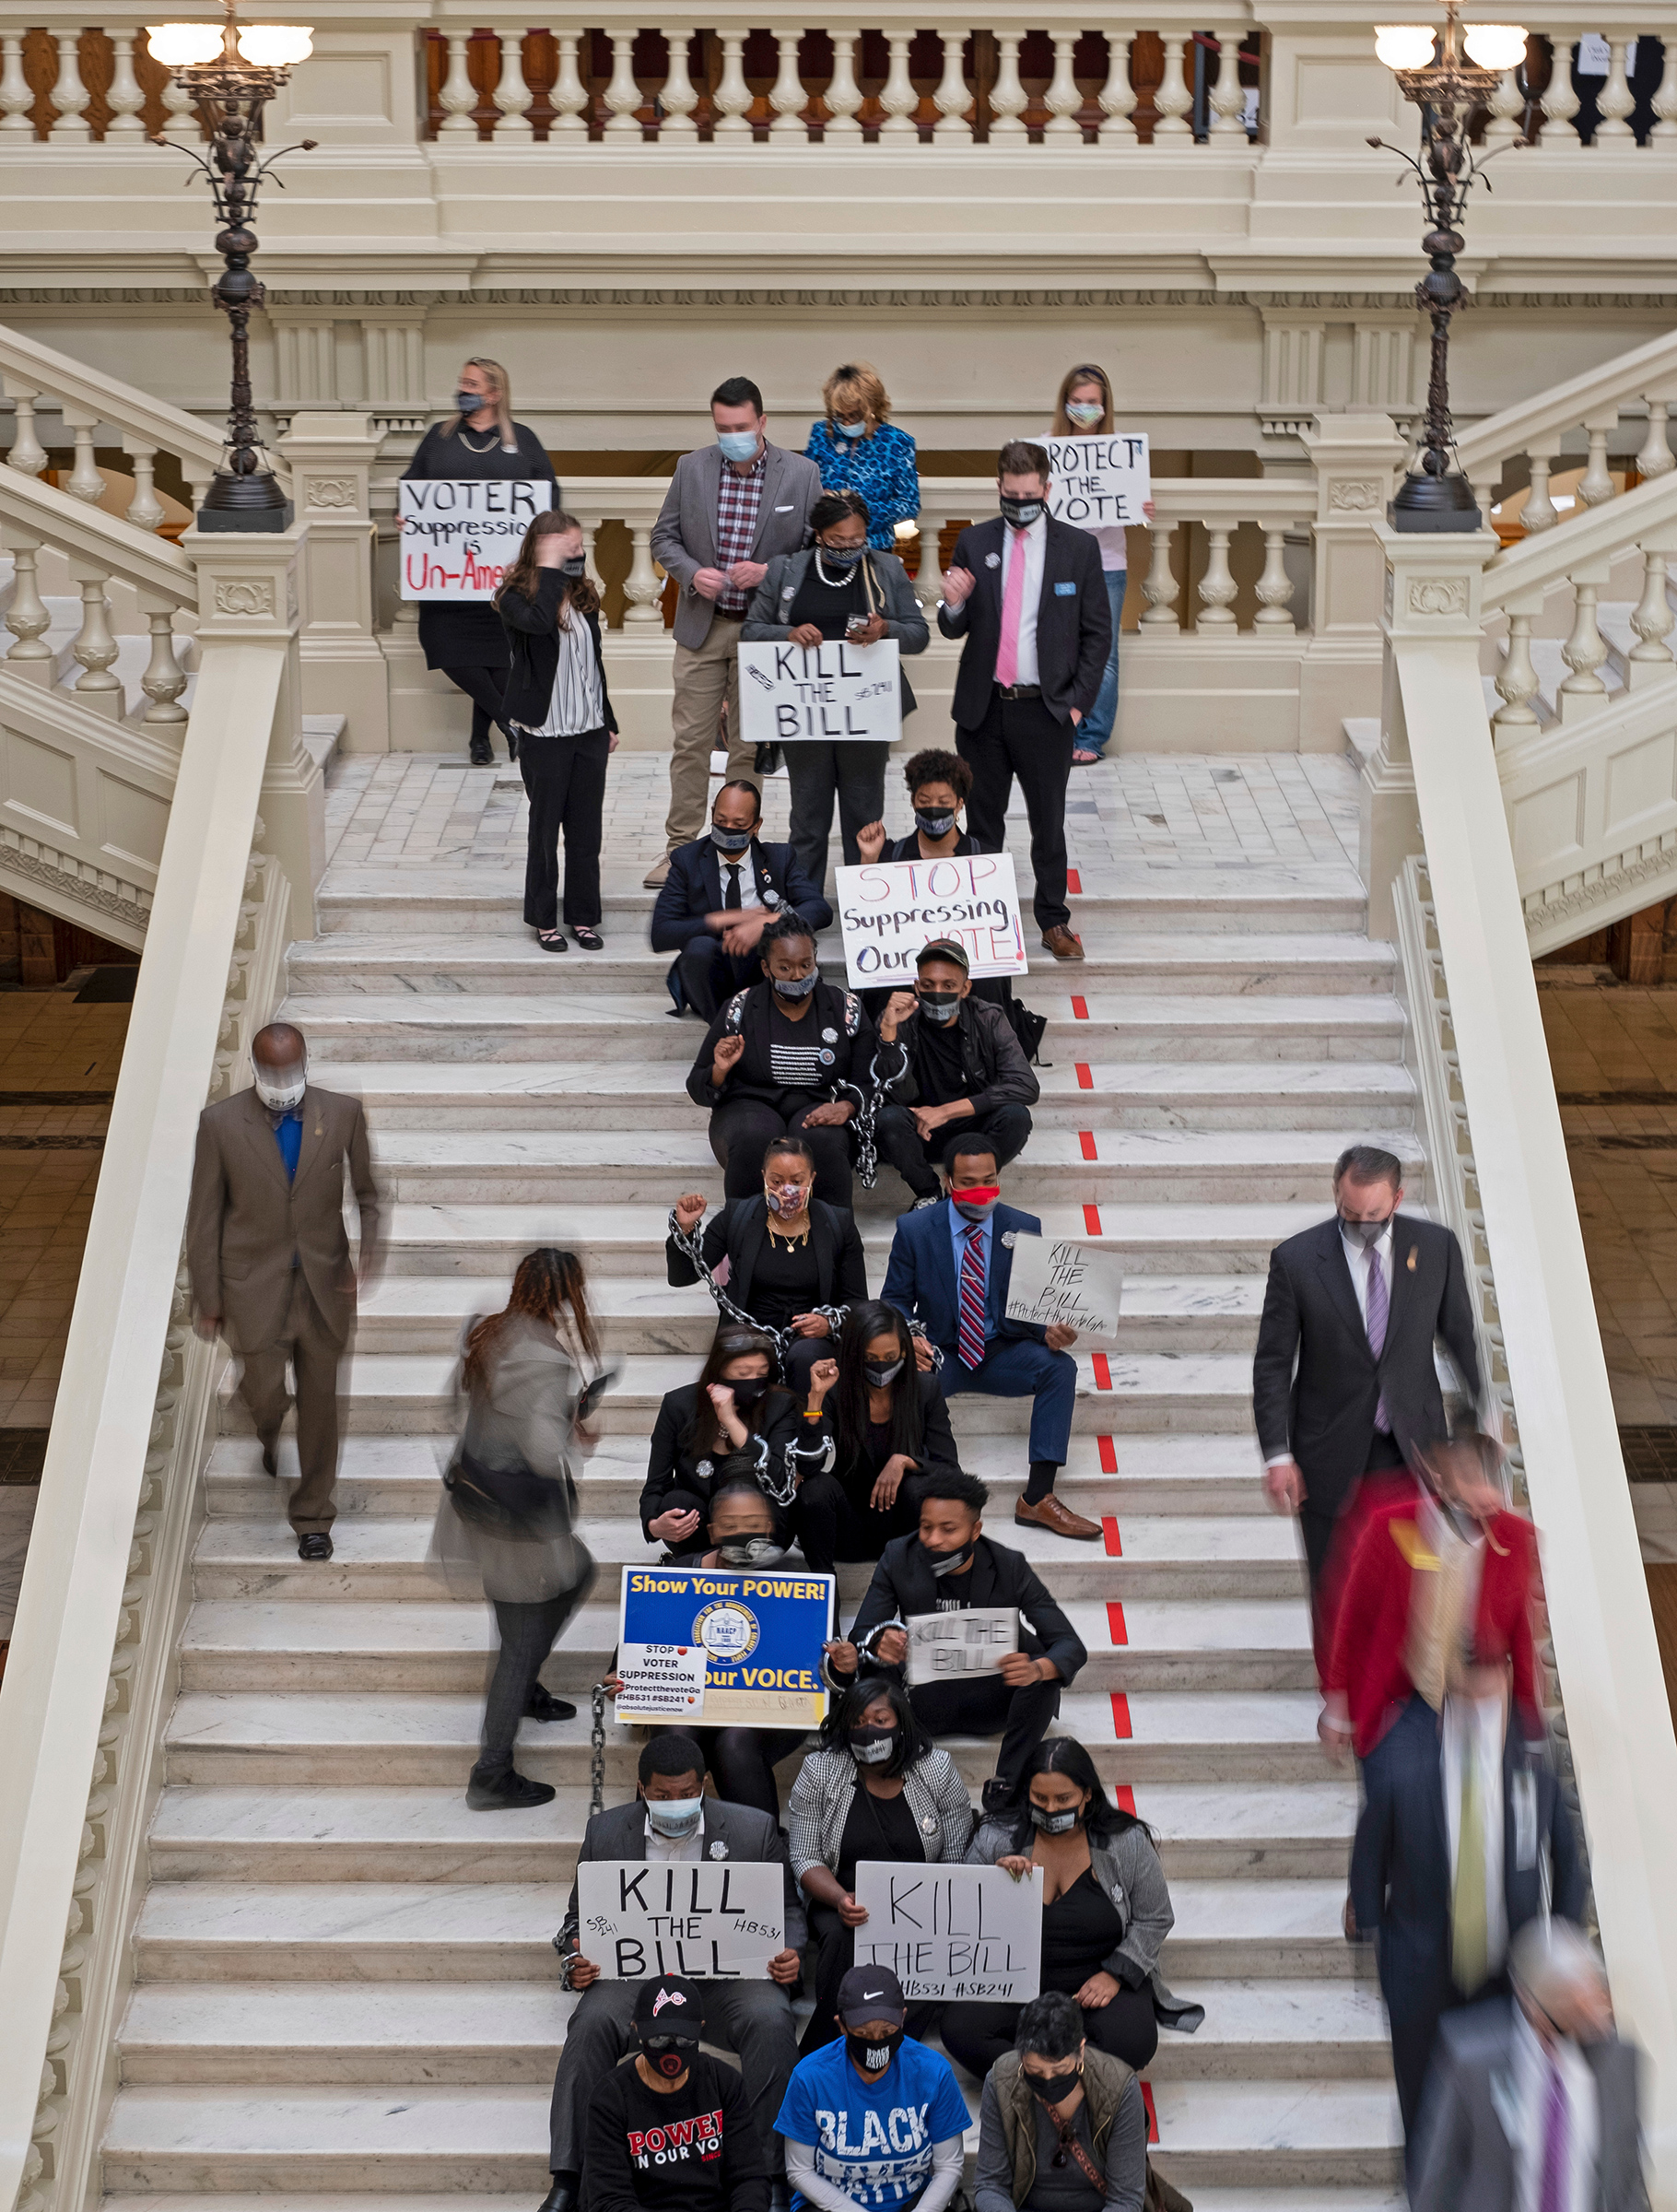 Protesters opposed to changes in Georgia's voting laws sit on the steps inside the State Capitol in Atlanta, Ga., as the Legislature breaks for lunch Monday, March 8, 2021, in Atlanta.